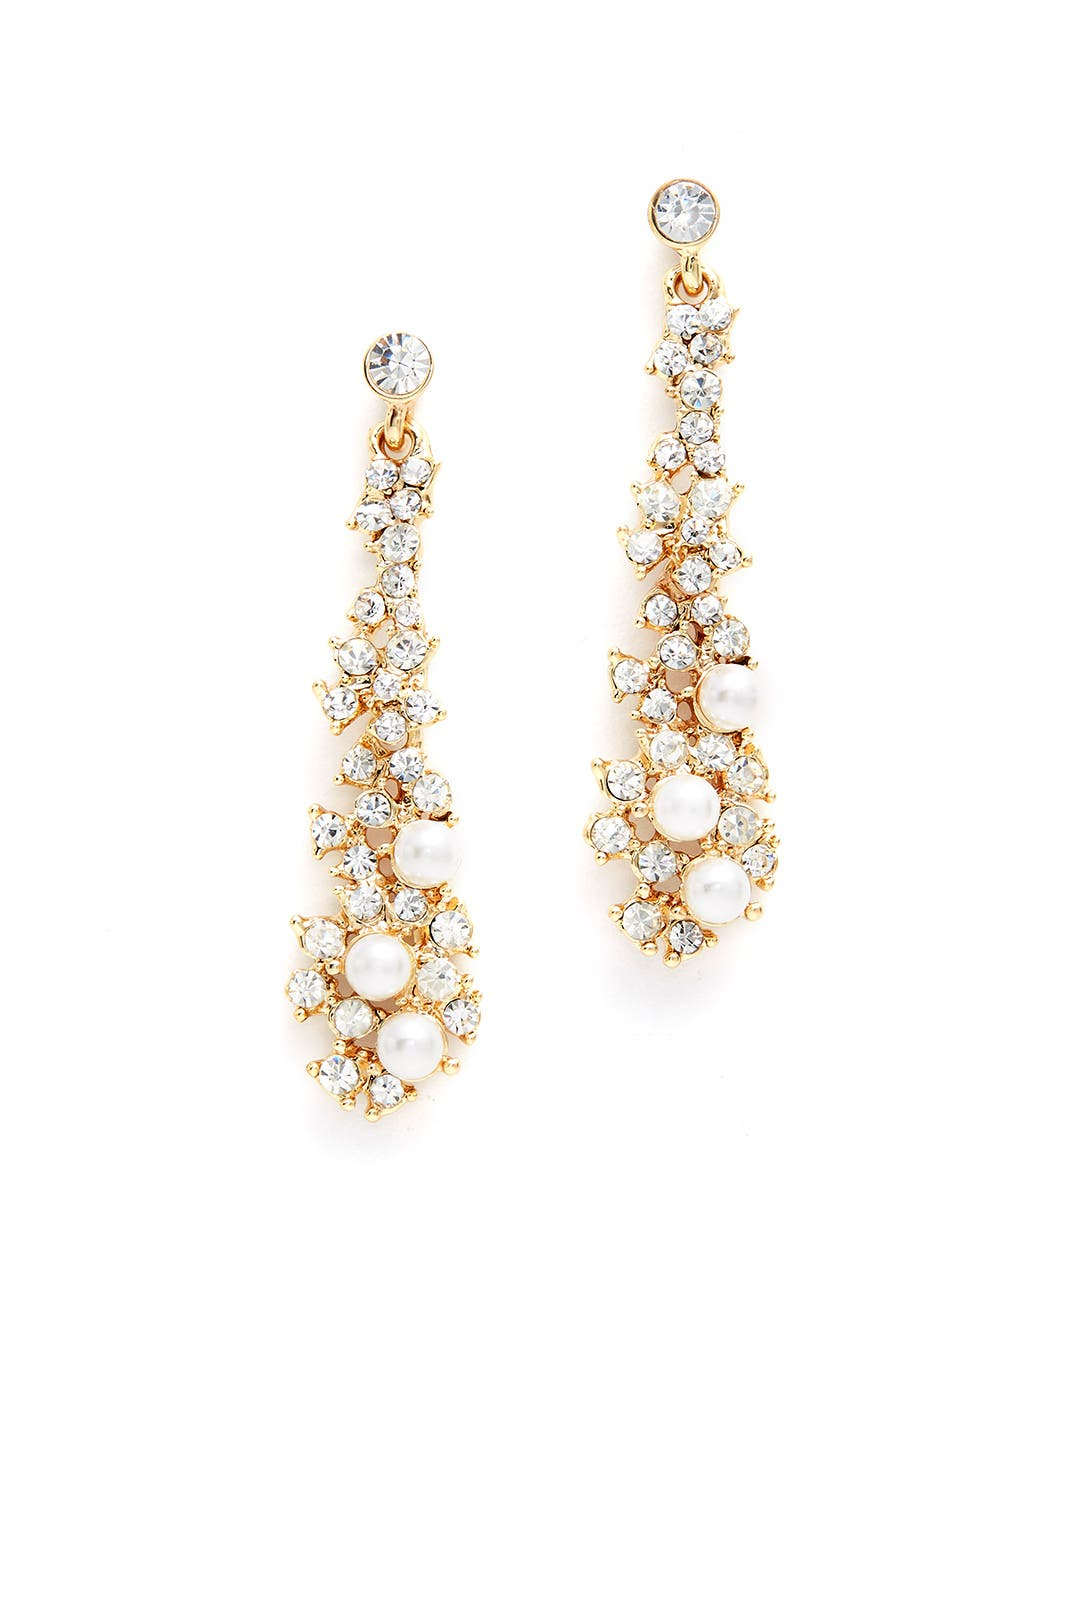 Crystal Waterfall Drop Earrings By Slate & Willow Accessories For $5  Rent  The Runway